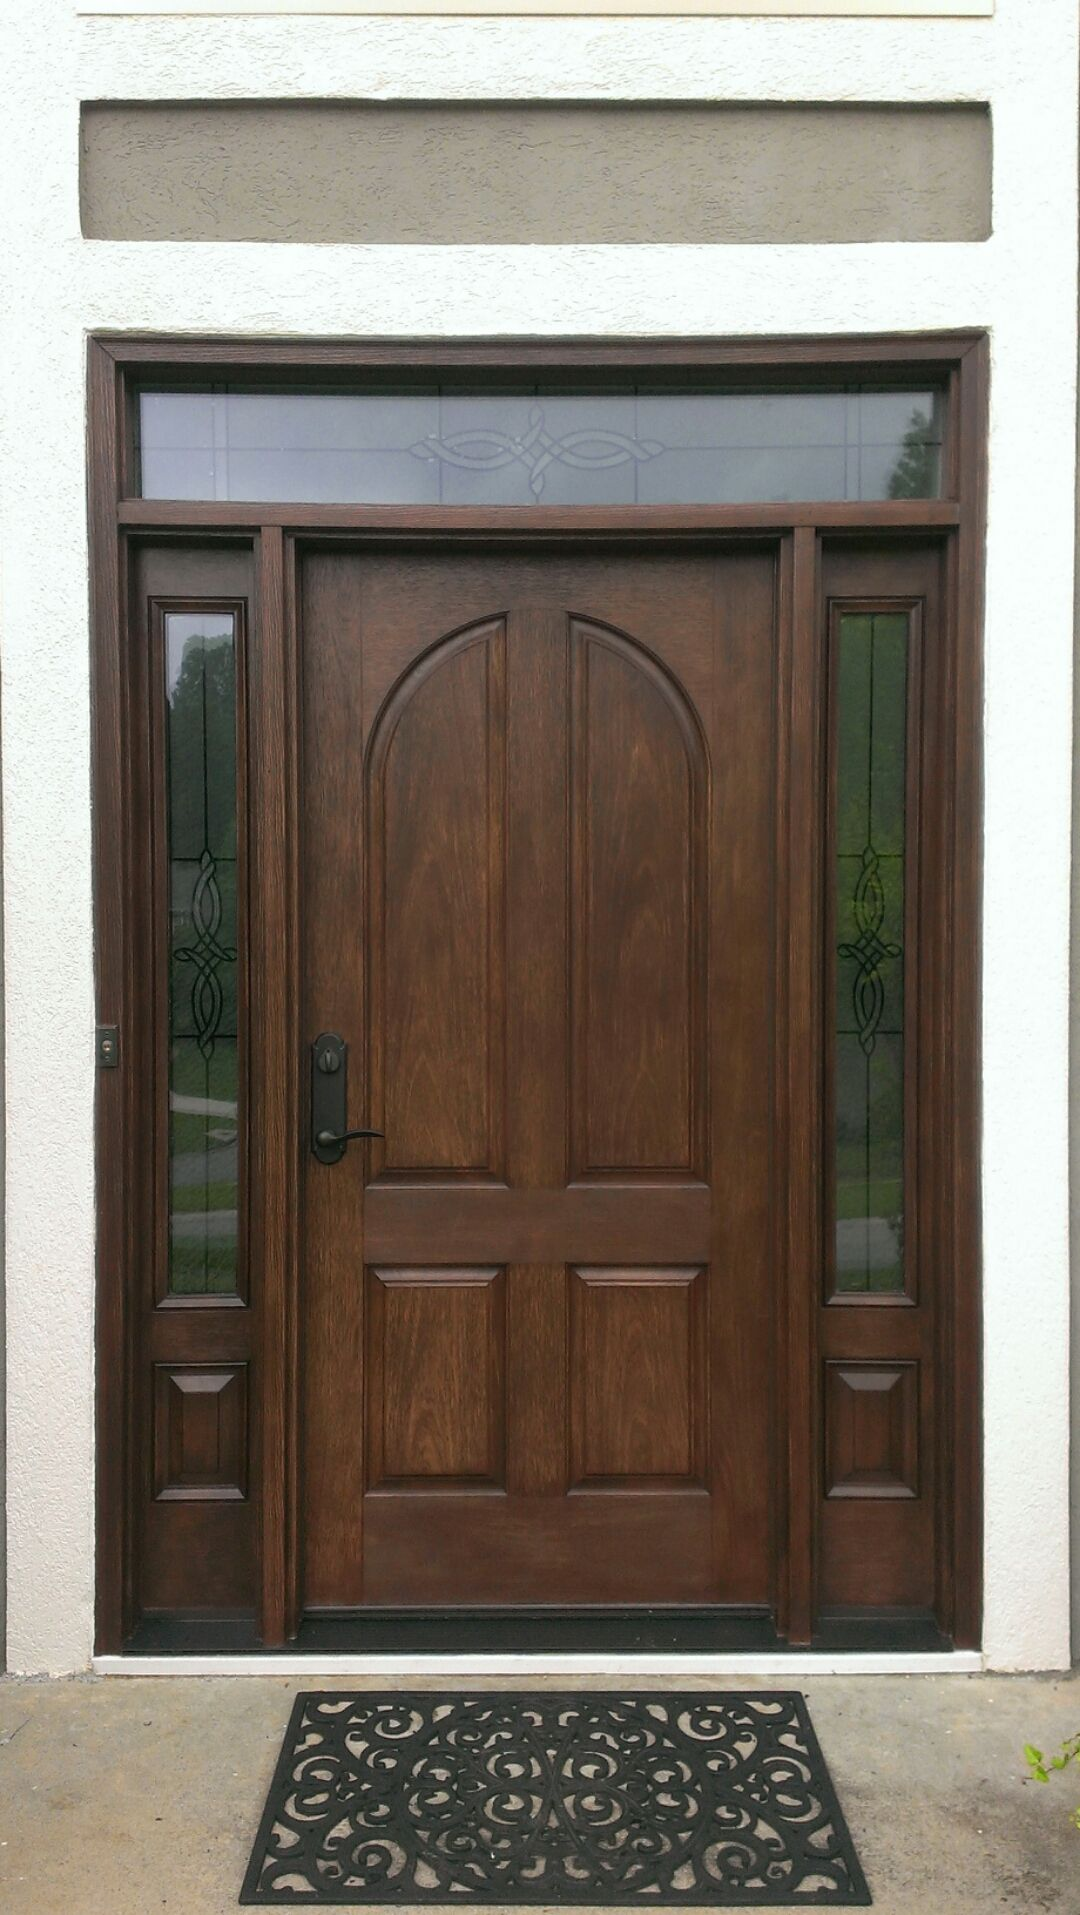 New therma tru classic craft door with longford glass for Front entry door ideas